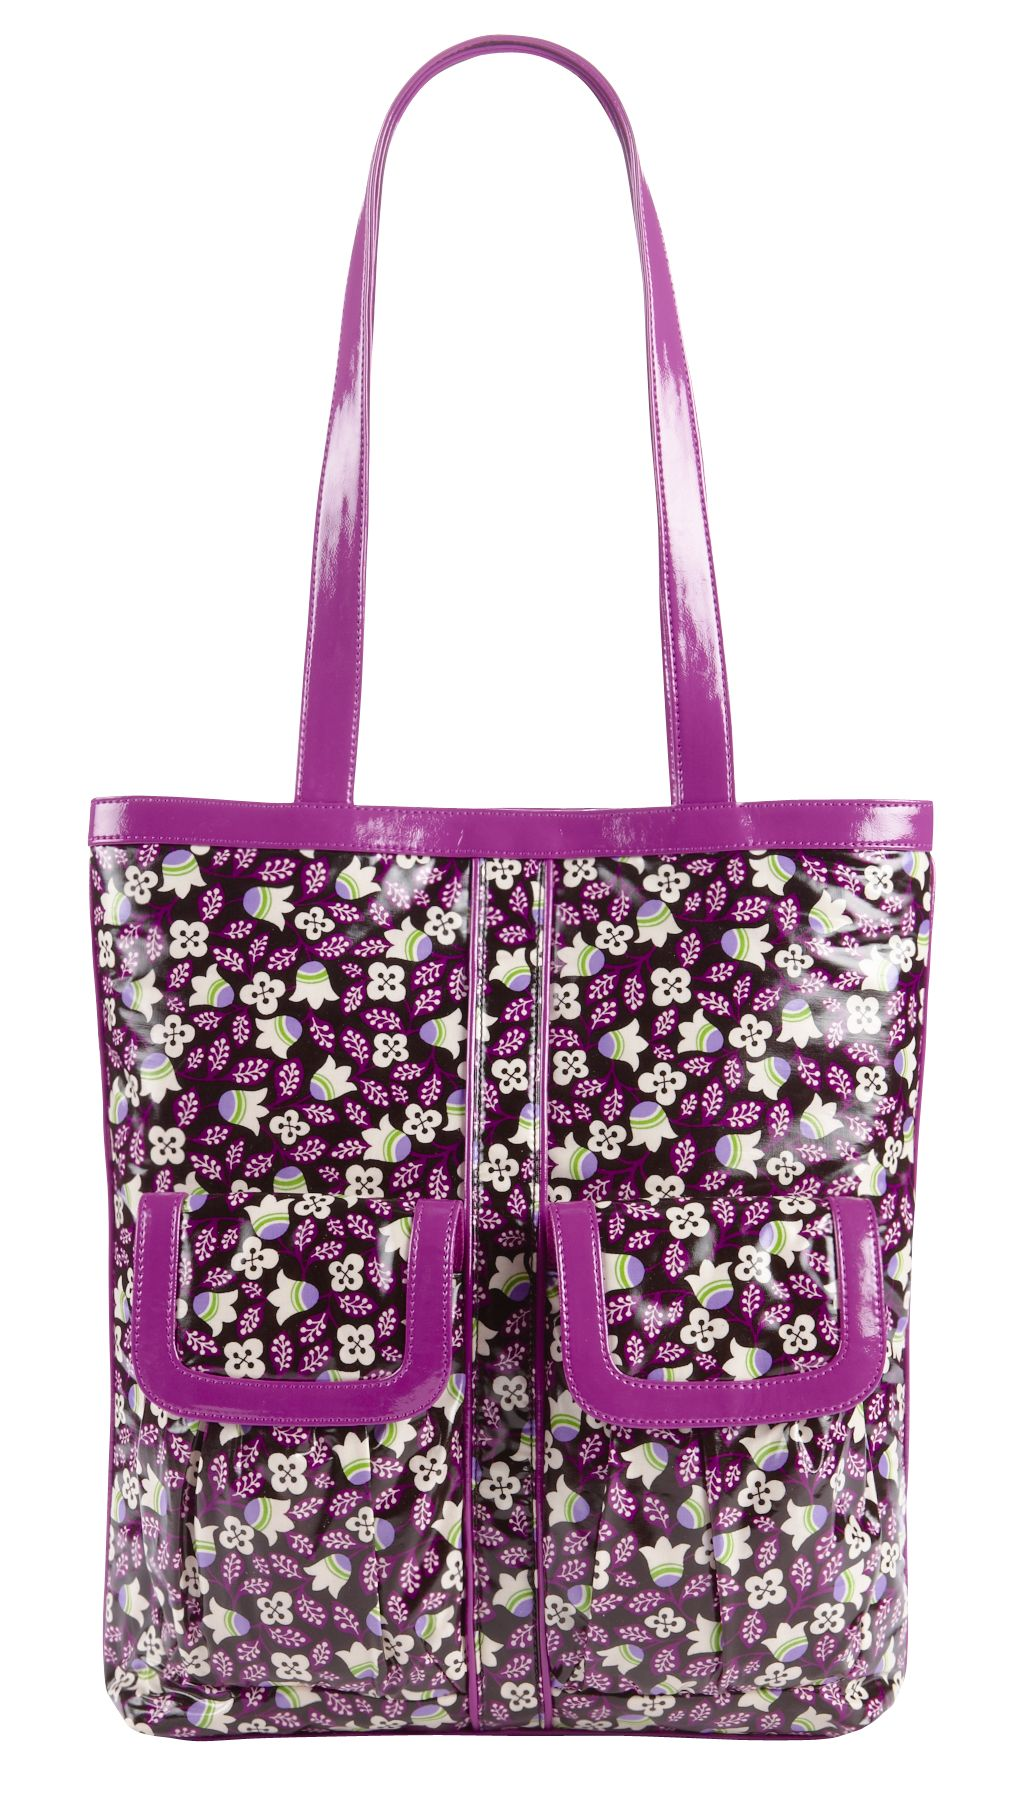 Vera Bradley Teen Idol Tote in Plum Petals